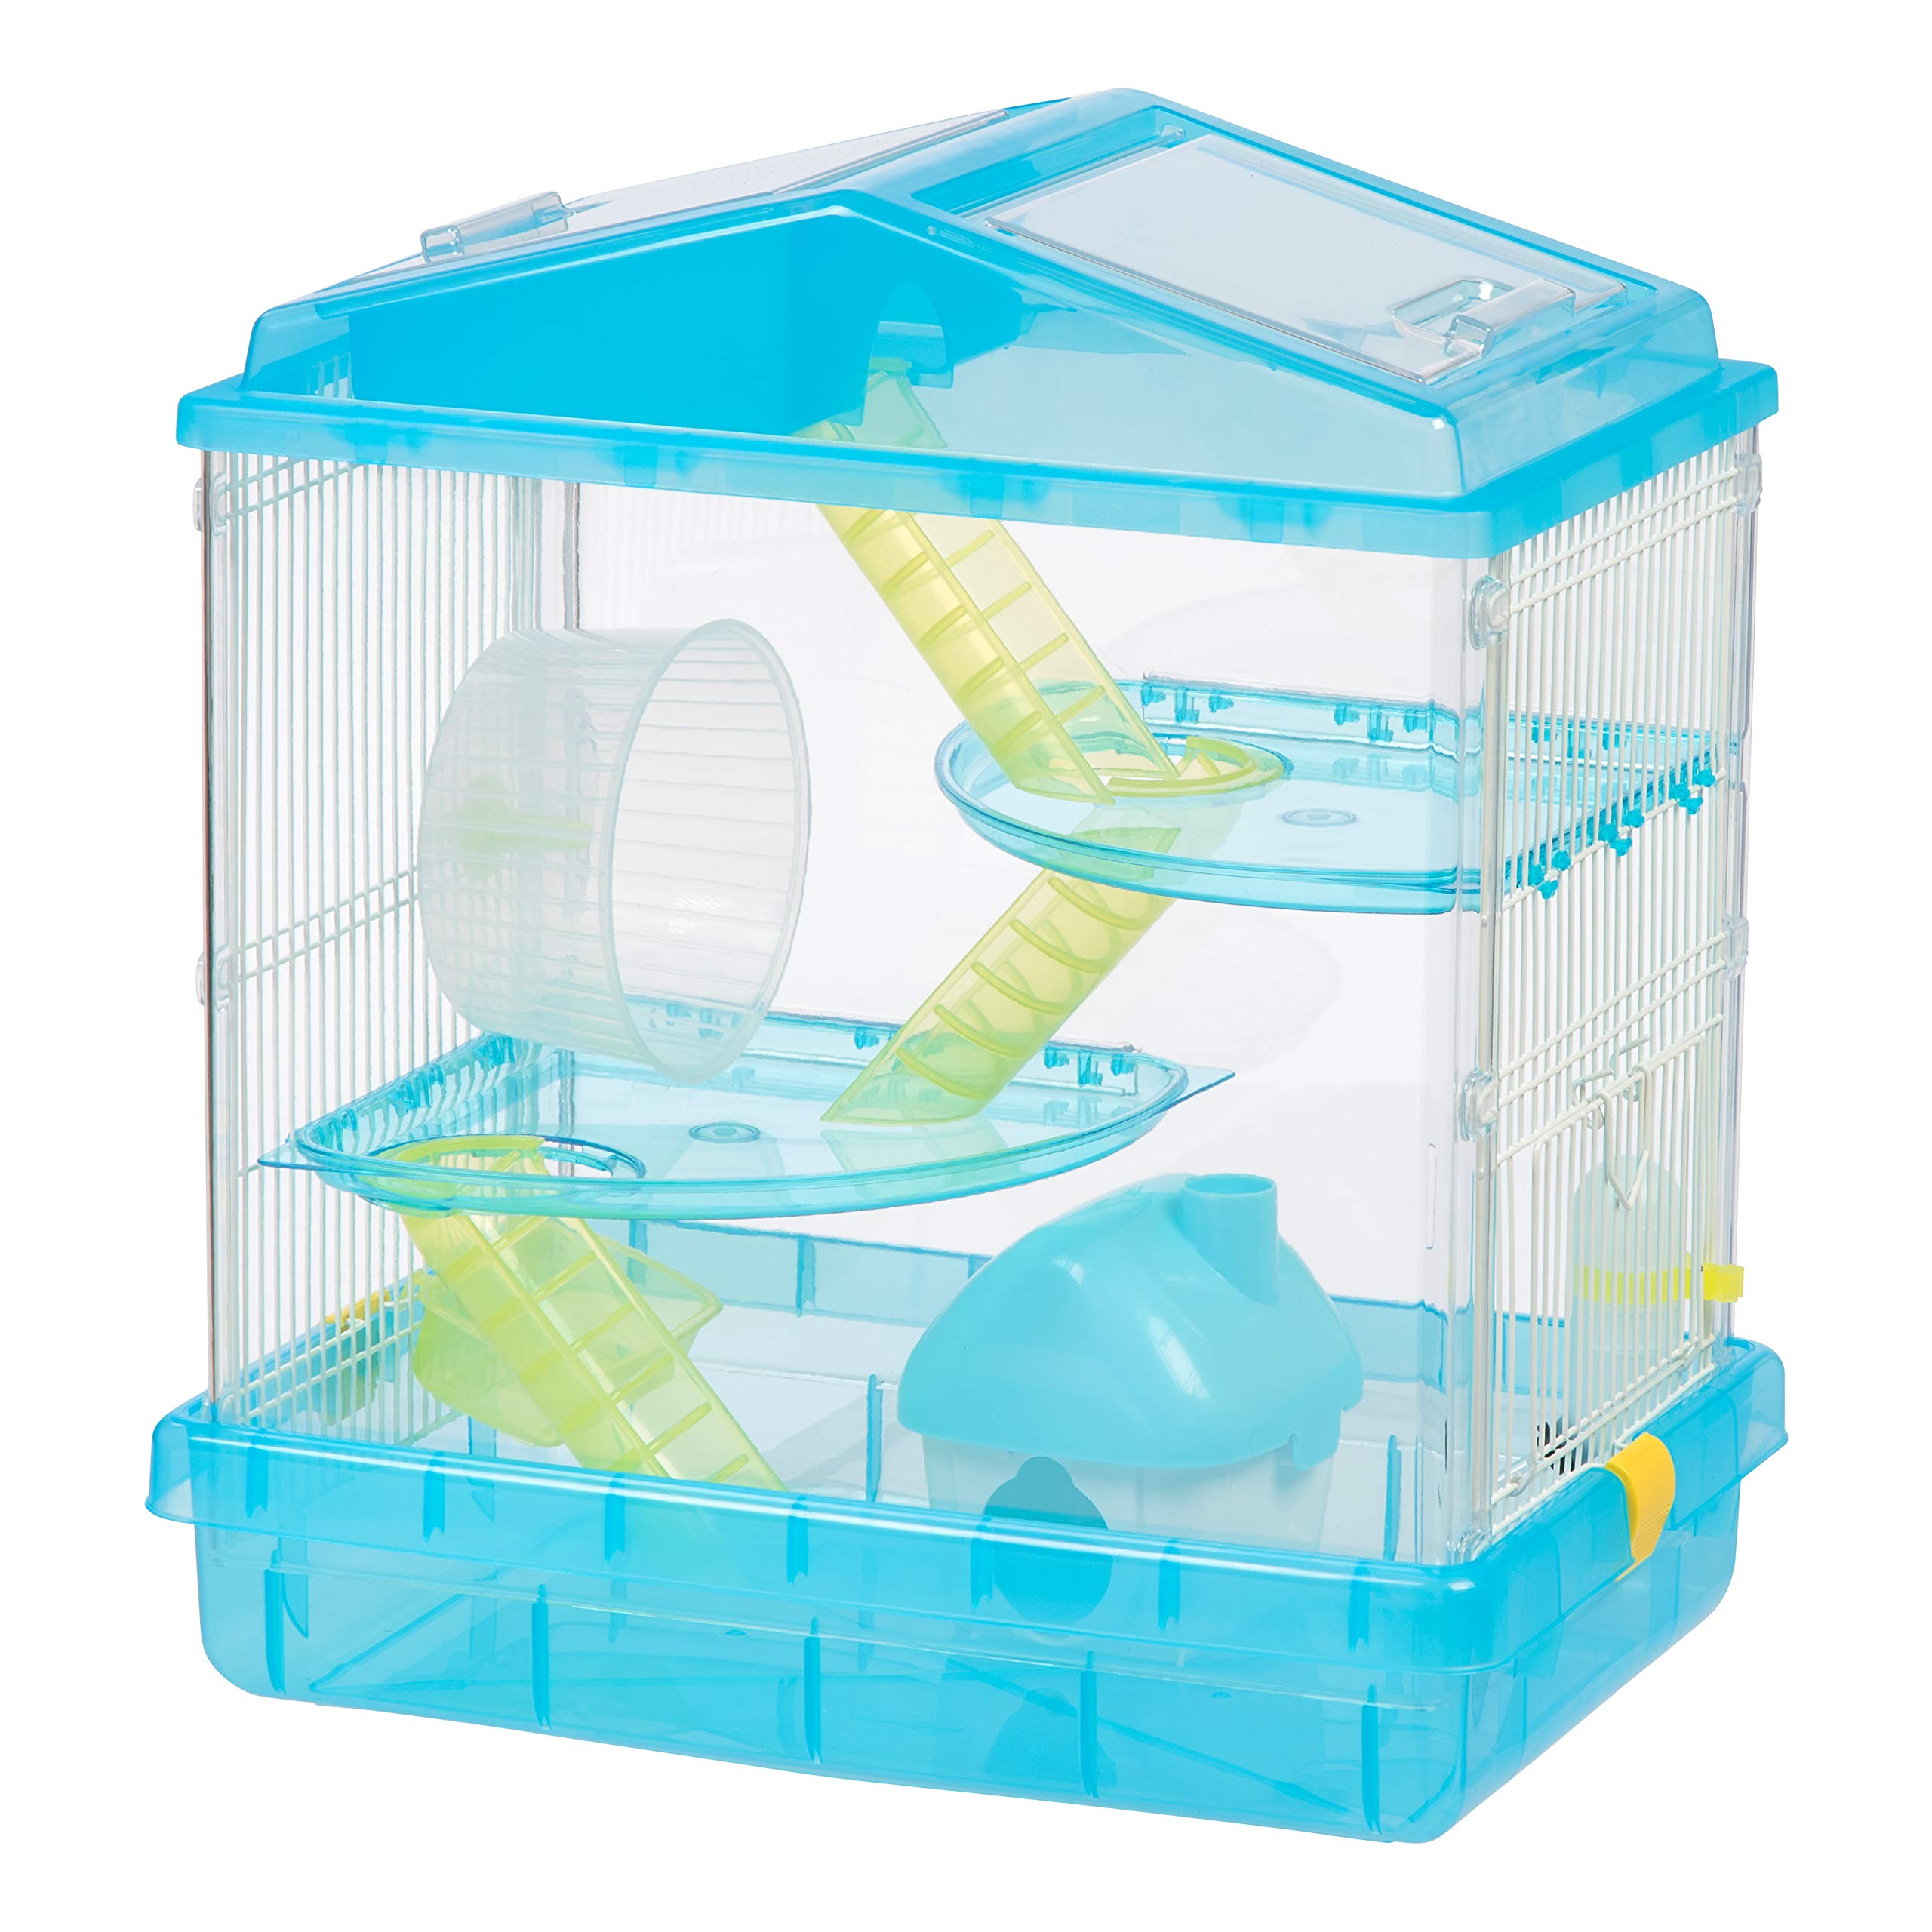 IRIS USA, PHSC-412, 3-Tier Hamster Cage, Blue by IRIS USA, Inc.